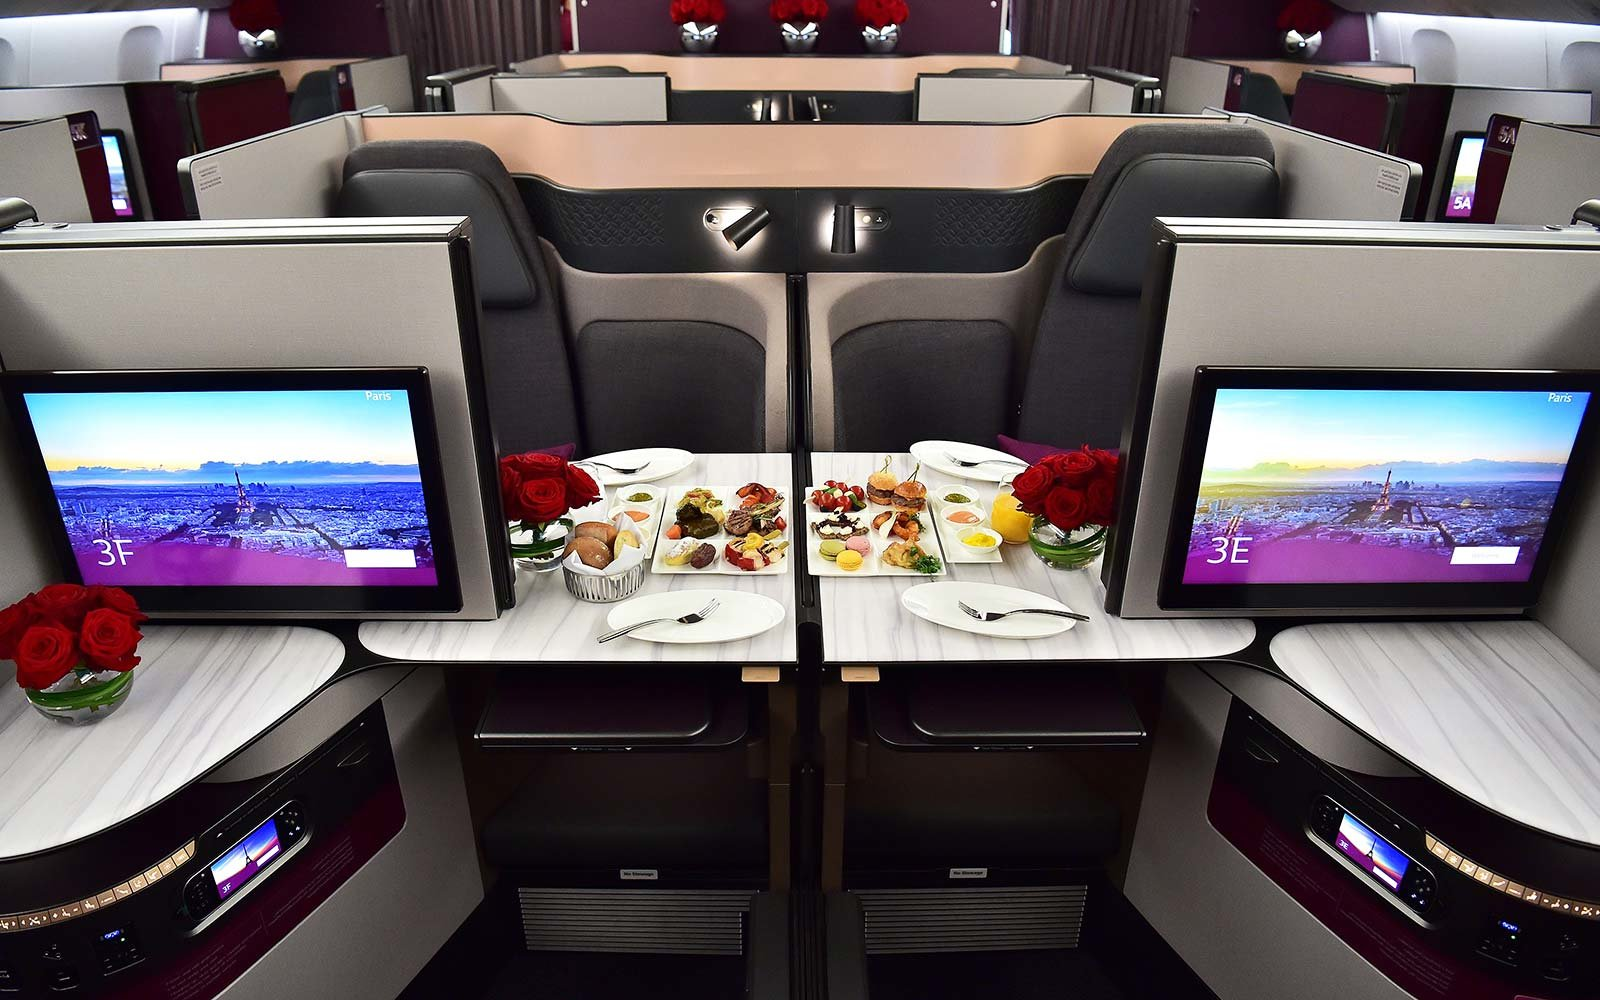 QSuite business class of a Qatar Airways Boeing 777 jet airliner on display at the International Paris Air Show in Le Bourget